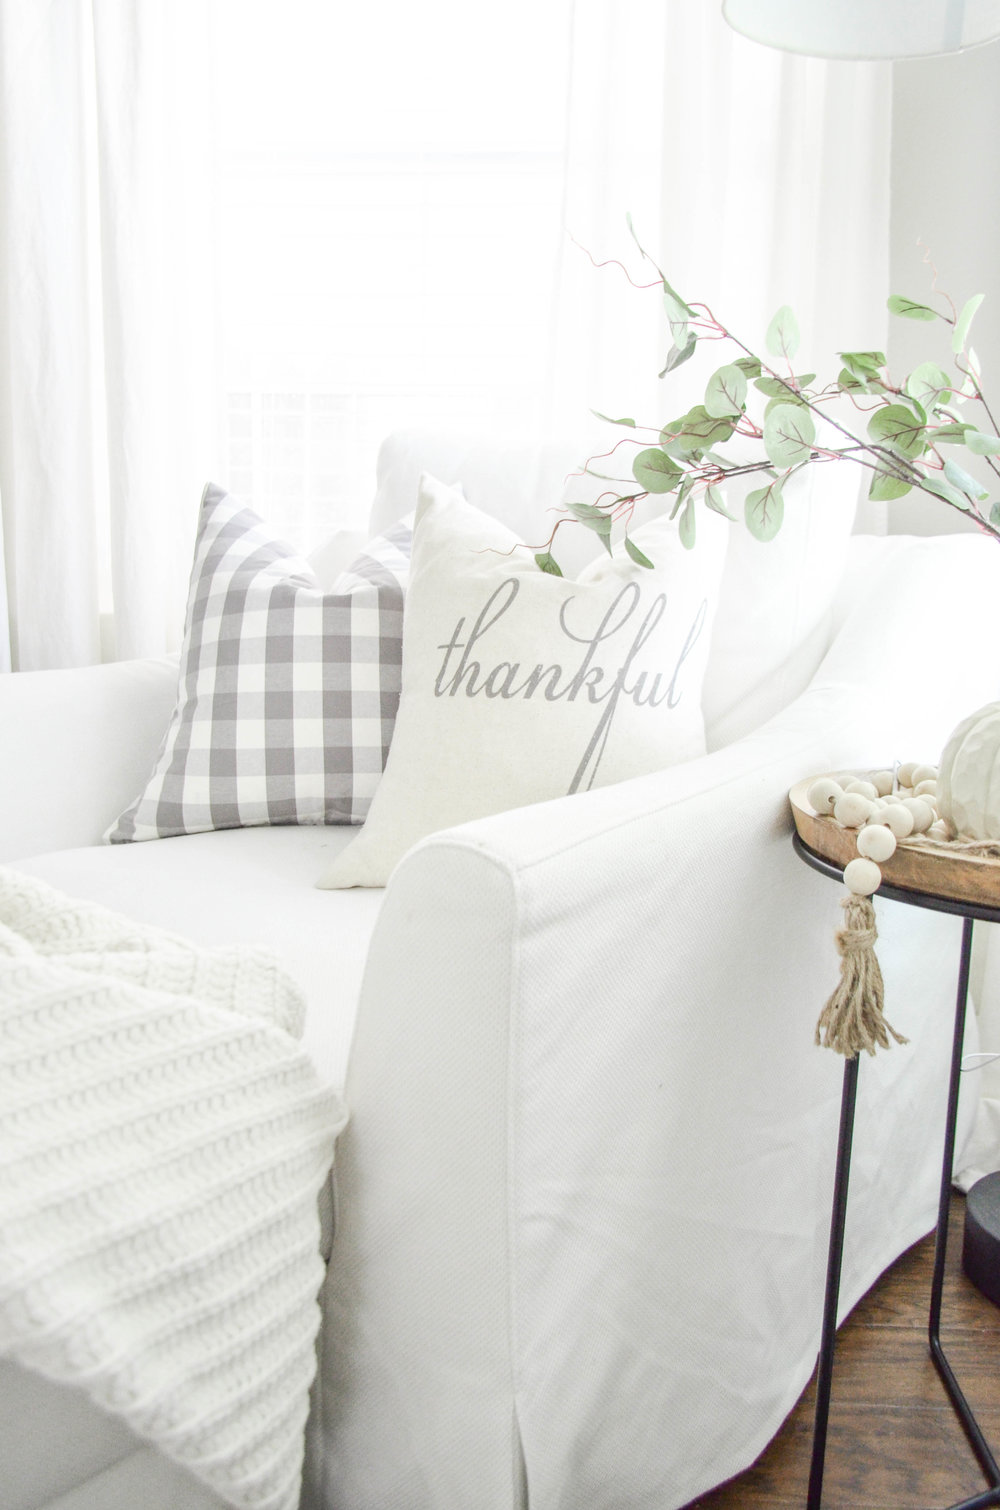 Neutral Fall Farmhouse Pillows styled by Julie Warnock Interiors.